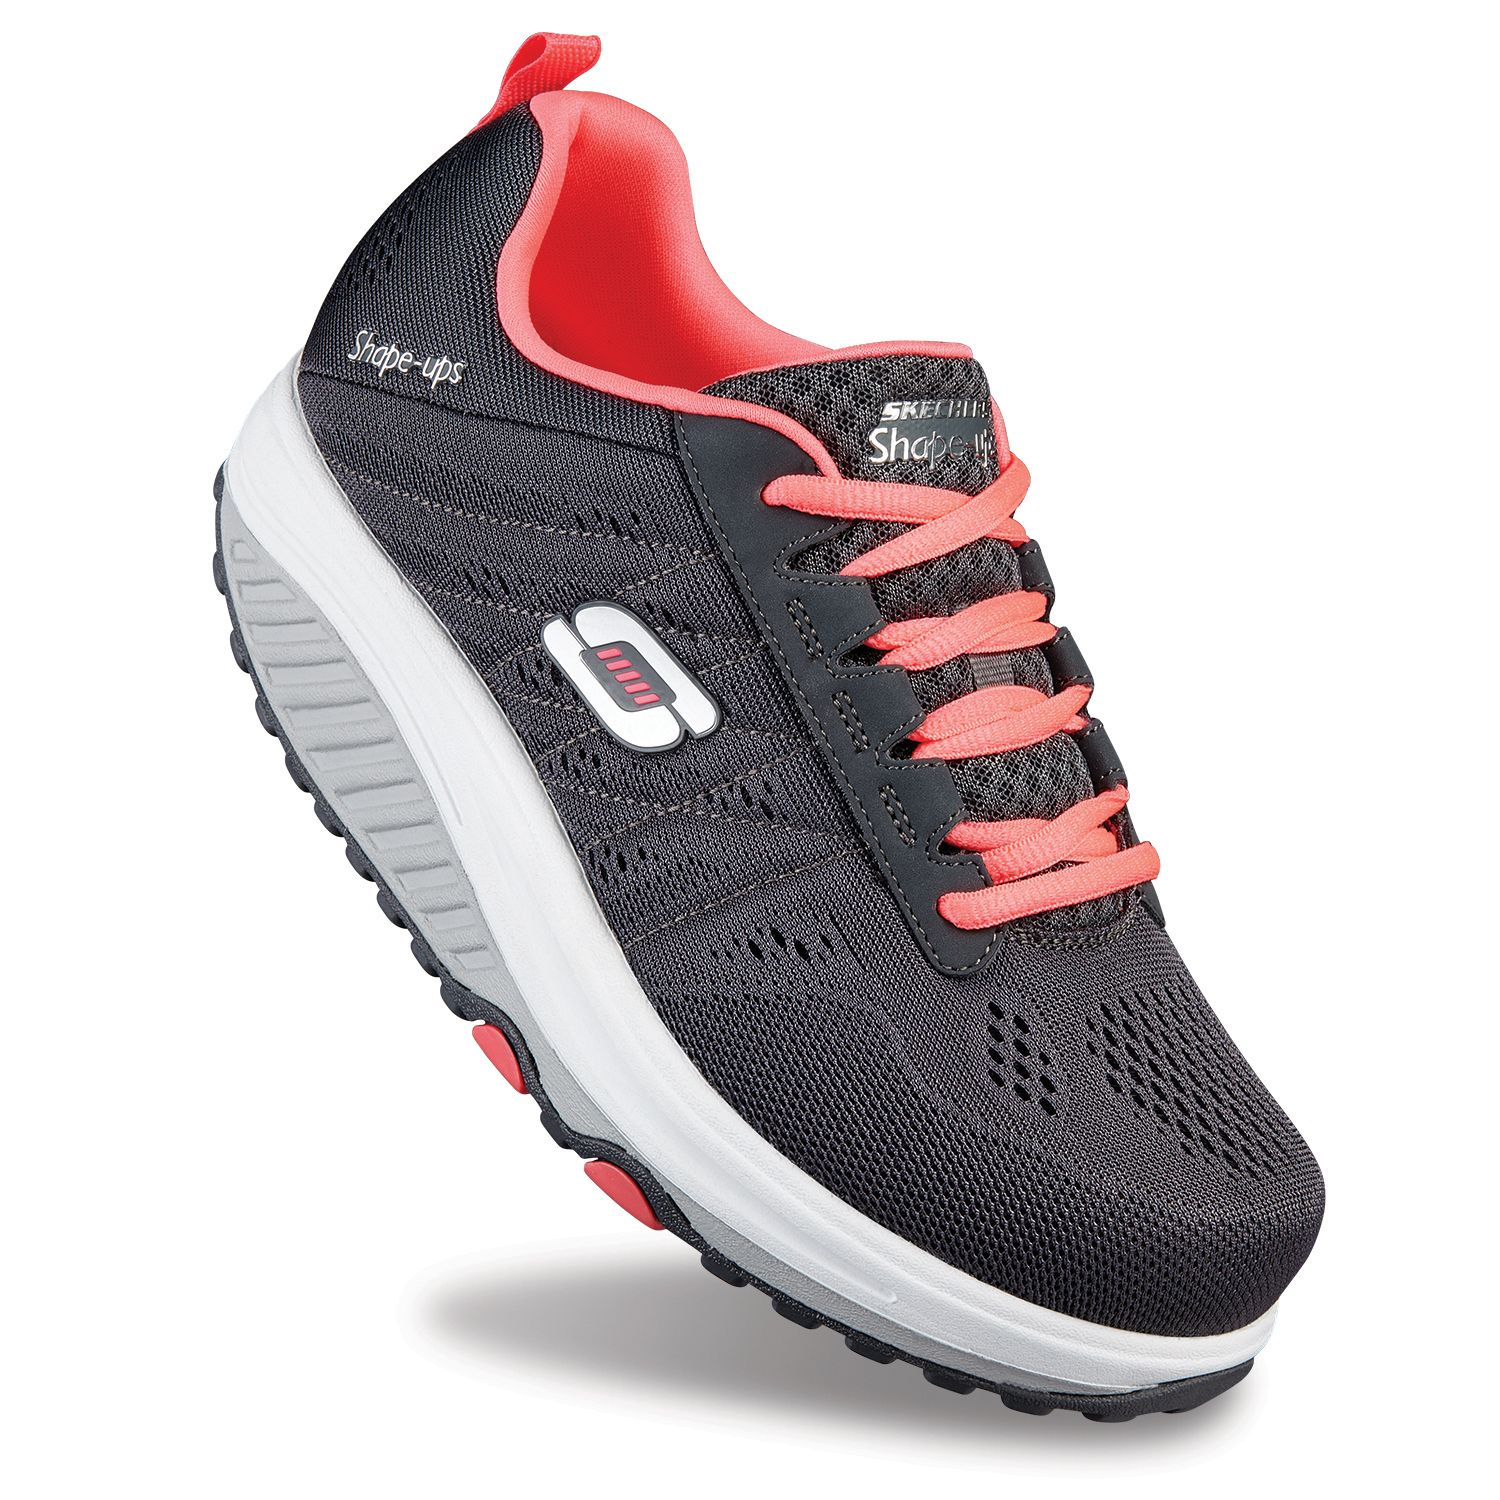 skechers shape up shoes recall